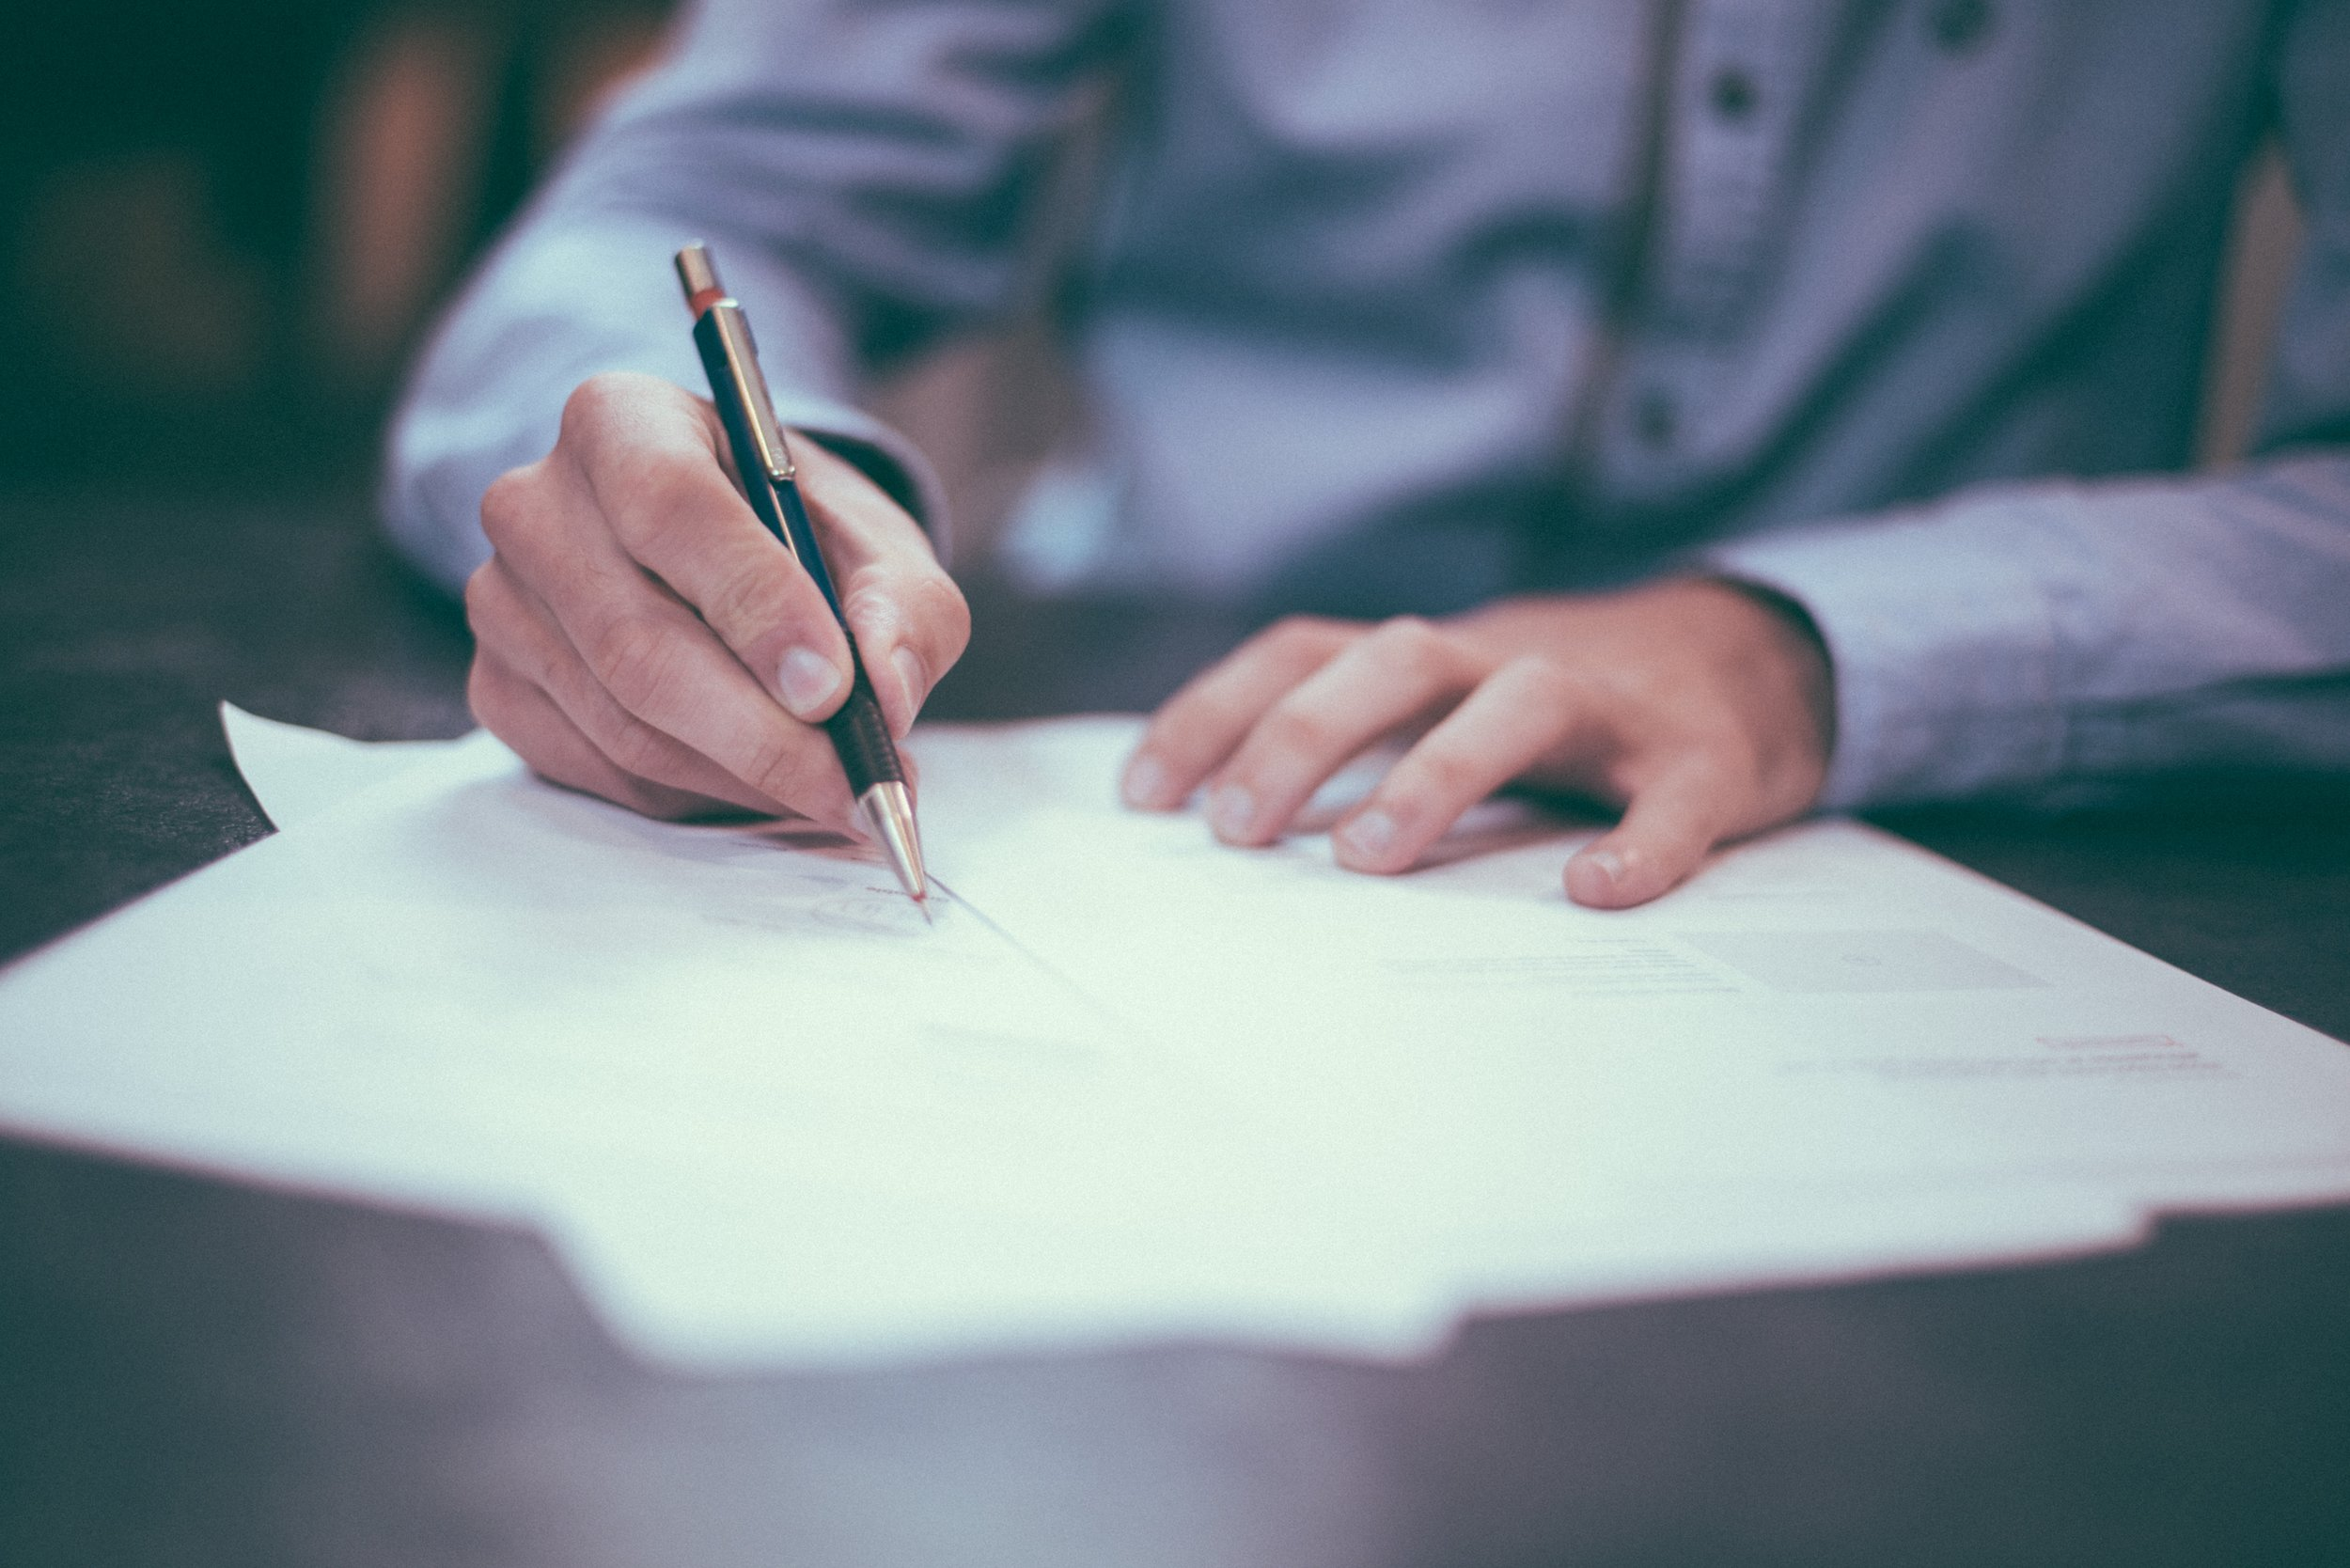 Signing Wills and Trusts